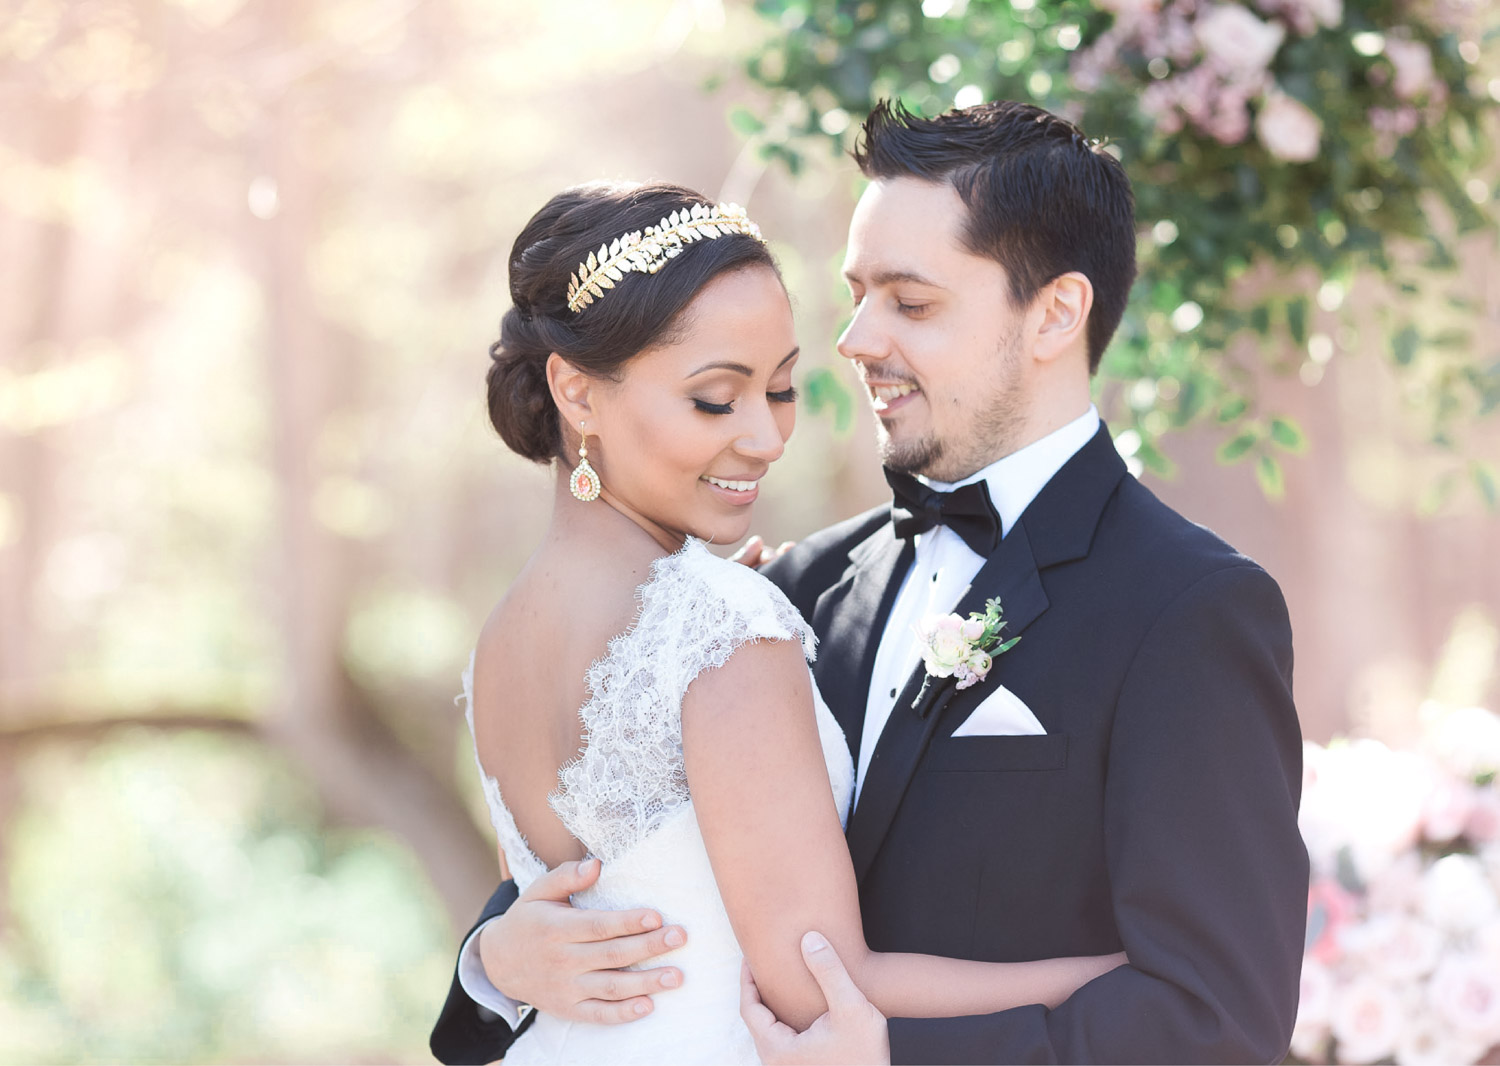 Making Bride & Groom Portraits a Priority on Your Wedding Day